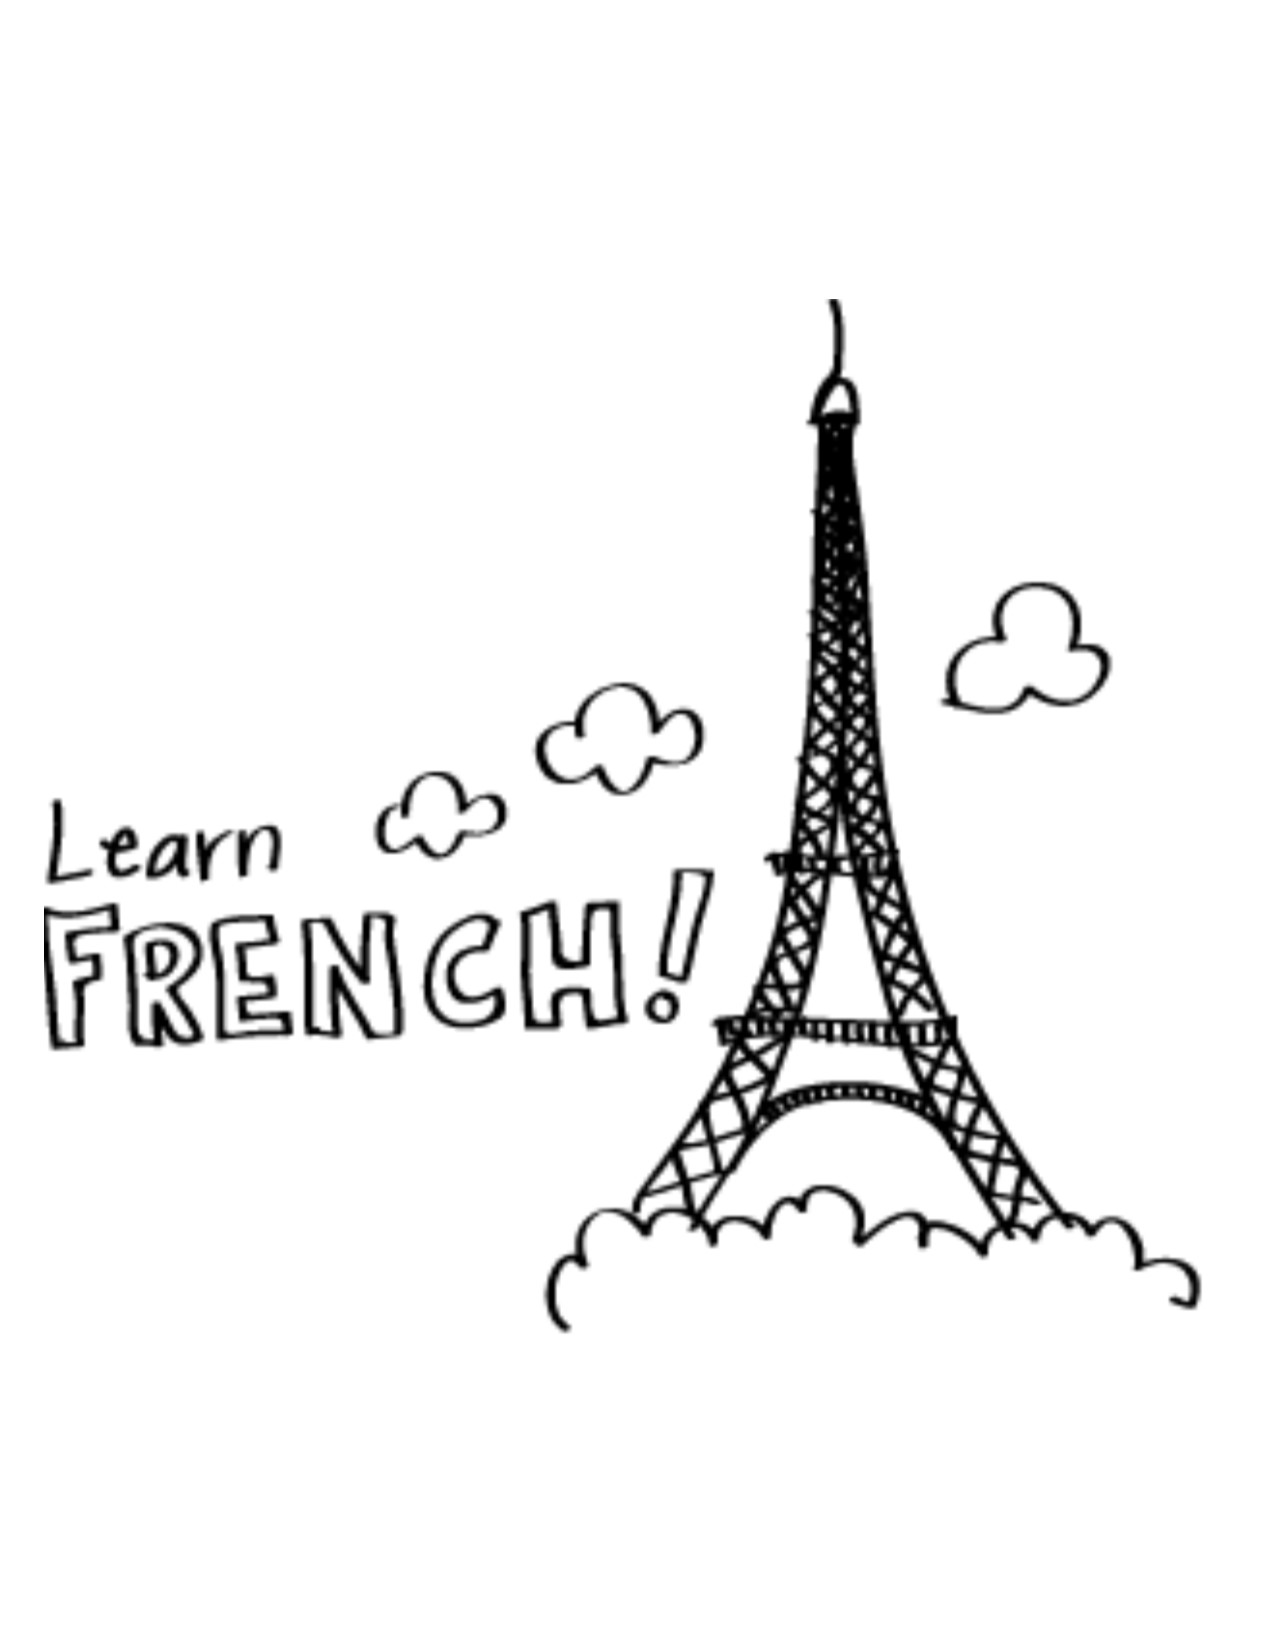 How To Learn French Enroll For French Classes Sulochana Blogs